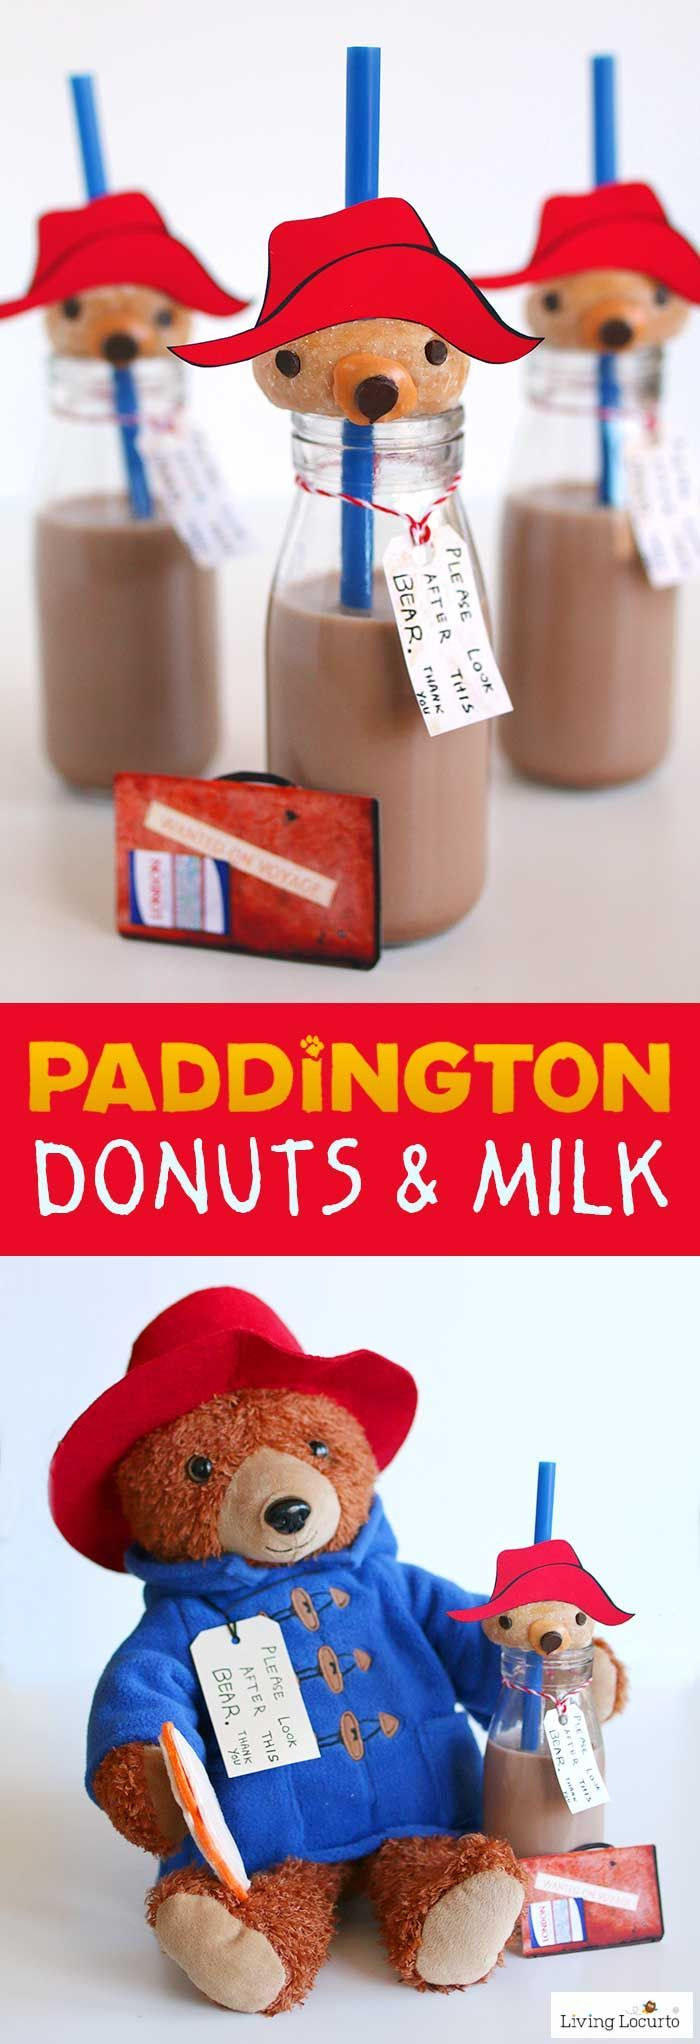 Paddington bear donuts and milk are adorable no bake party treats! A simple DIY fun food recipe idea inspired by the movie PADDINGTON 2. Get free printables and directions for how to make these cute bear donuts food craft. Cute dessert for a Paddington Birthday Party or family movie night! #sponsored #Paddington2  #paddington #donut #doughnut #dessert #recipes